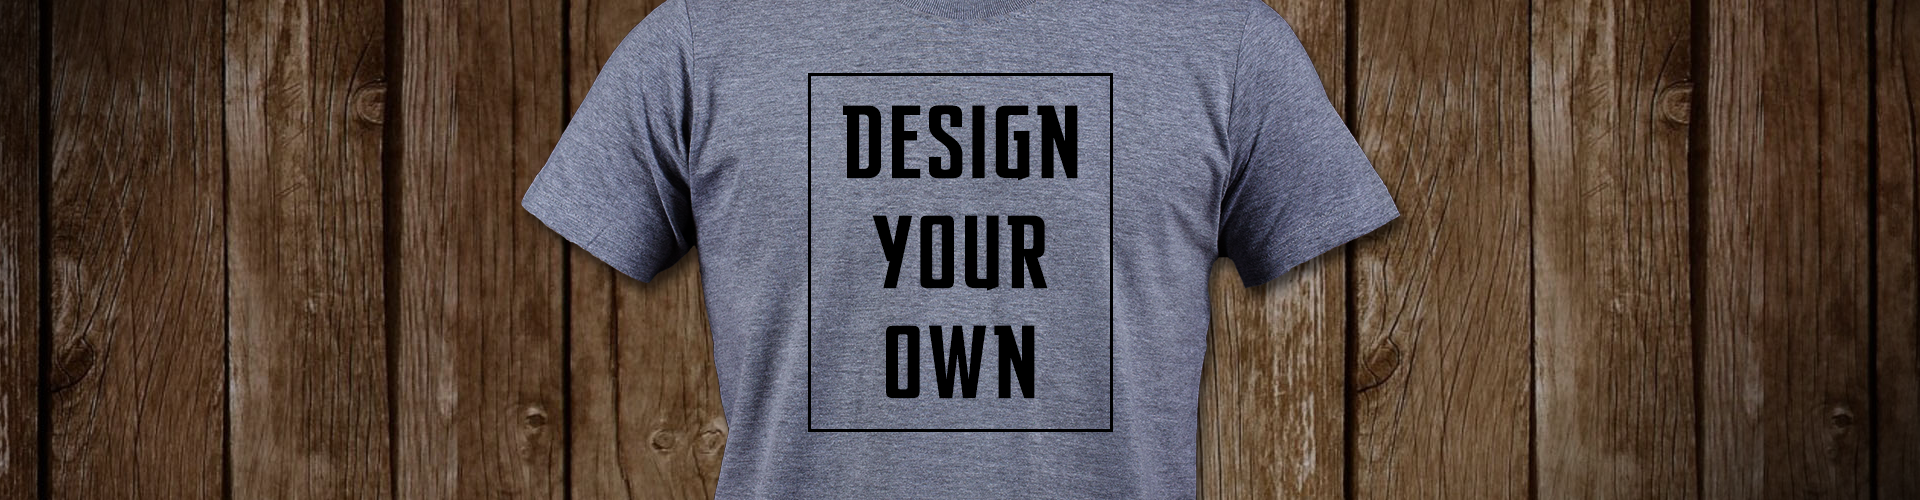 Sew Much More Design Your Own